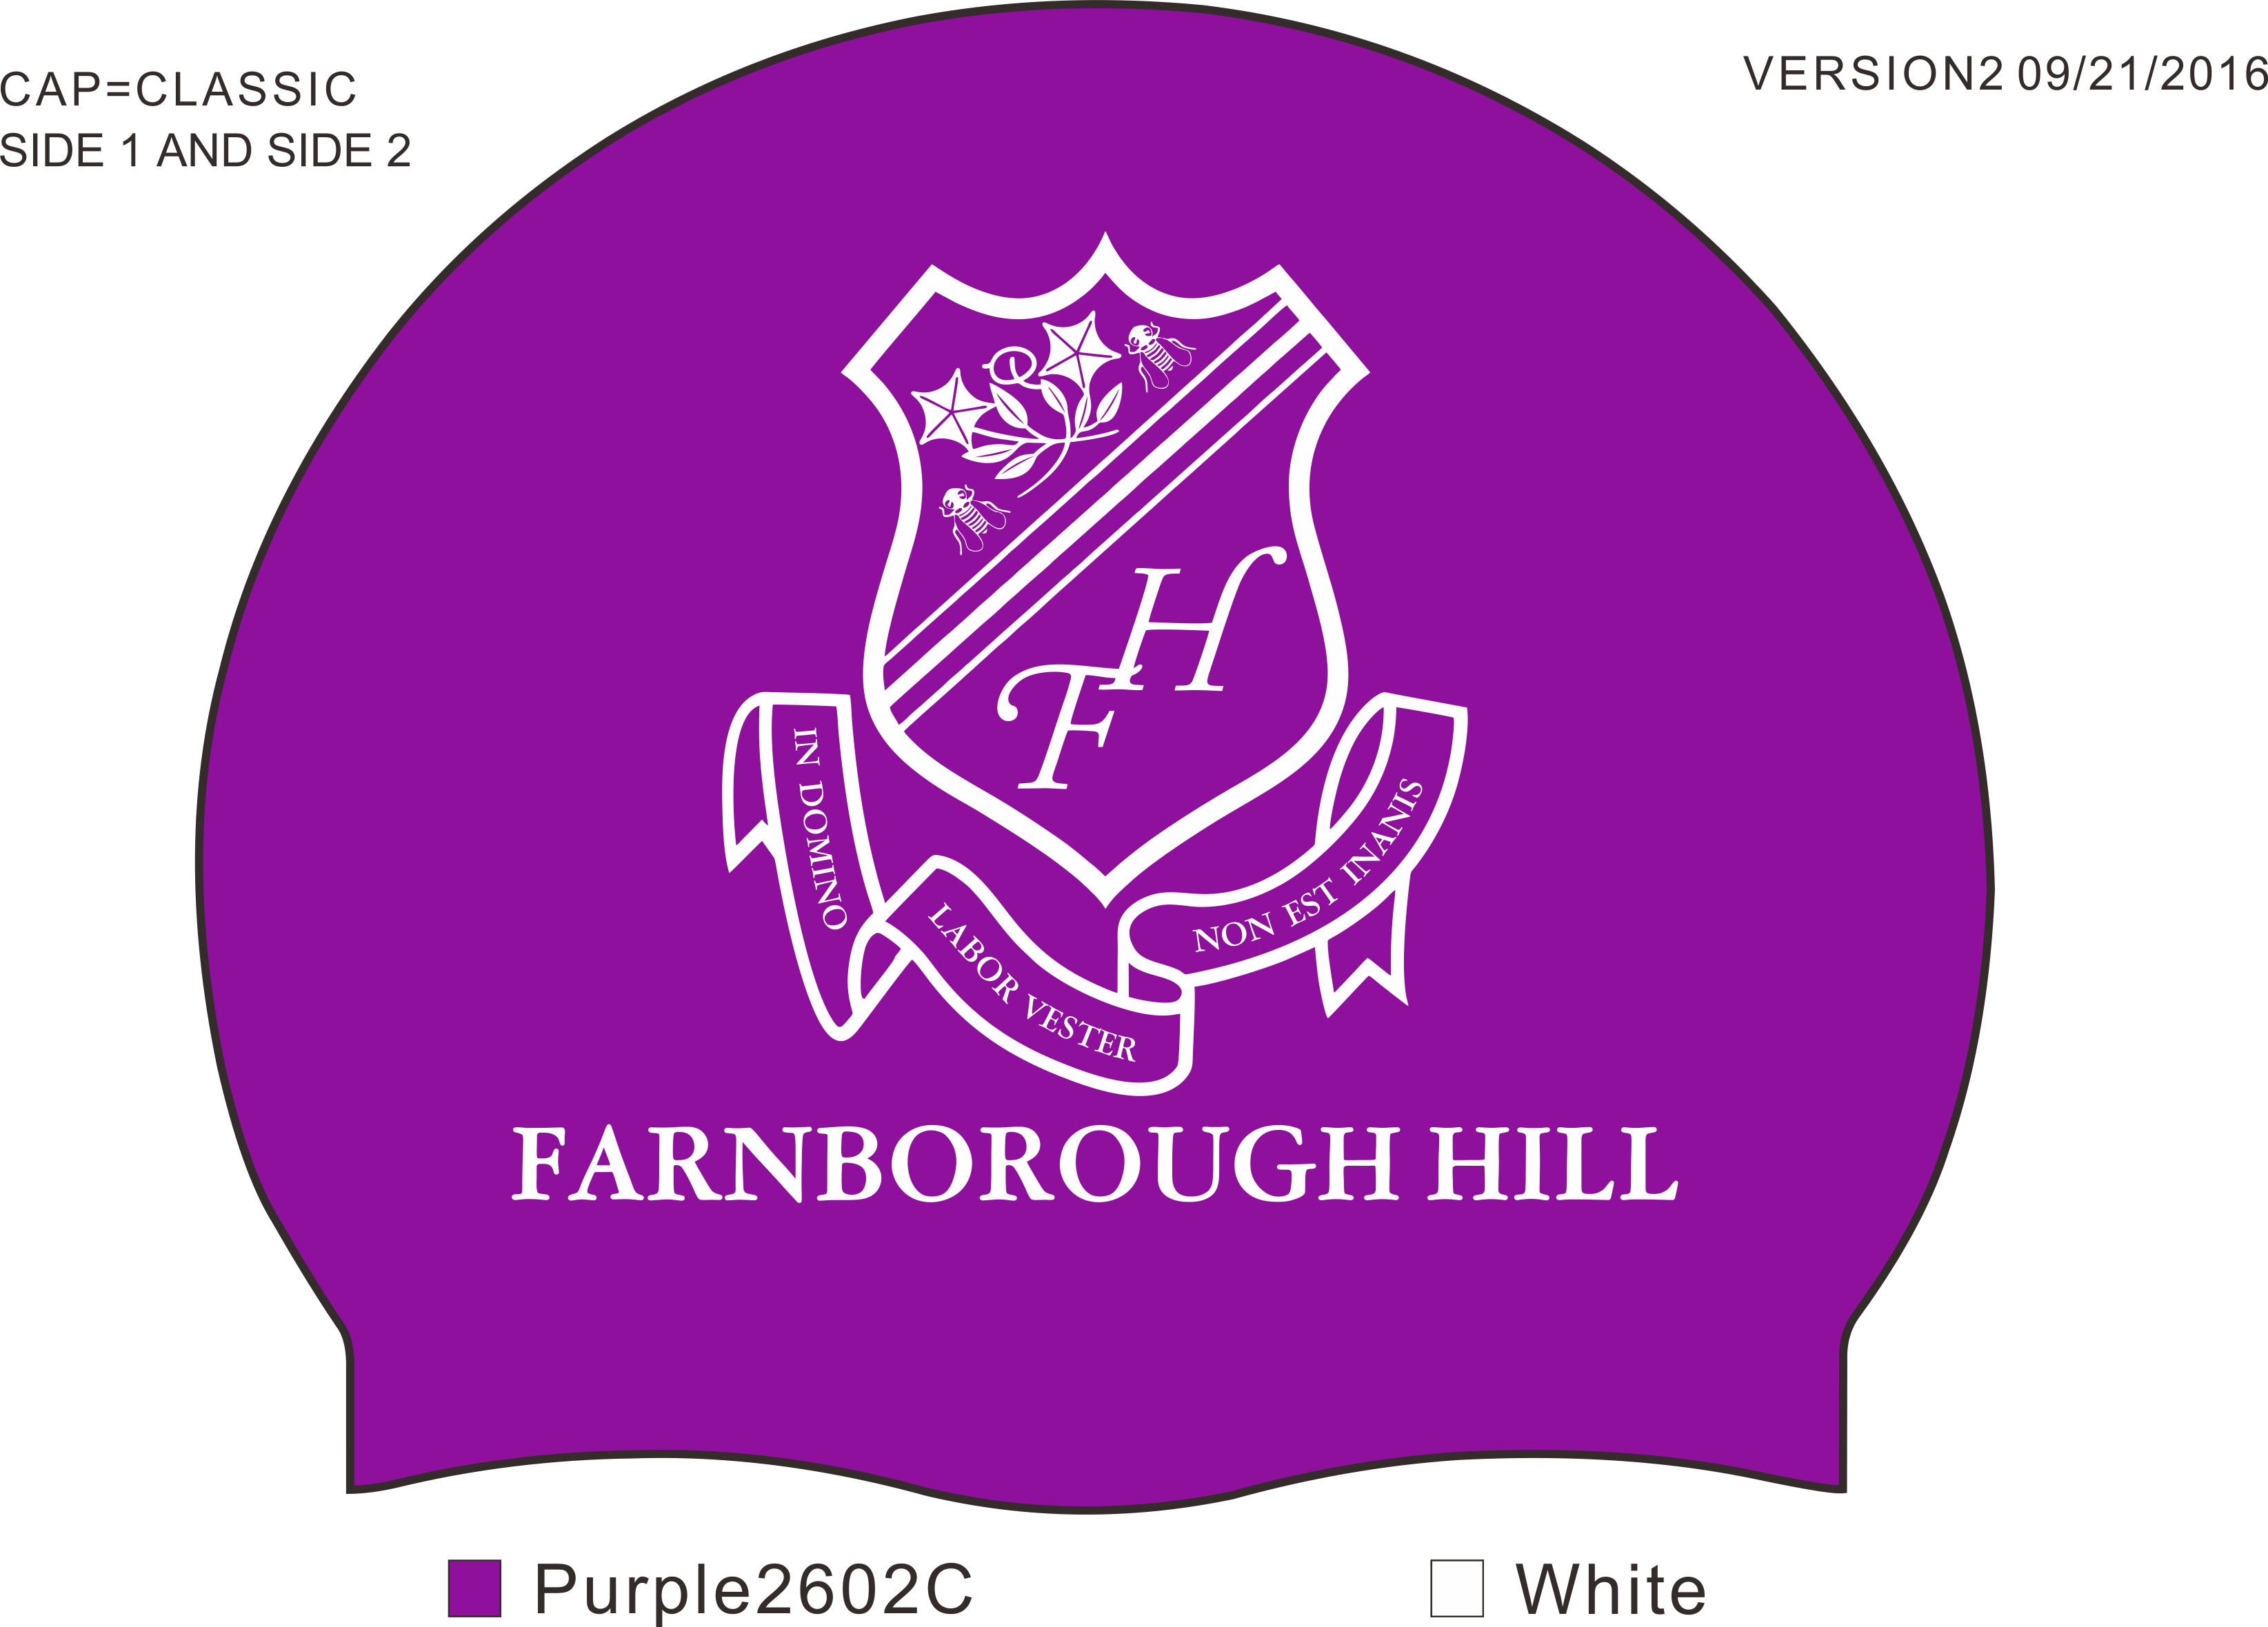 farnborough-hill-v2